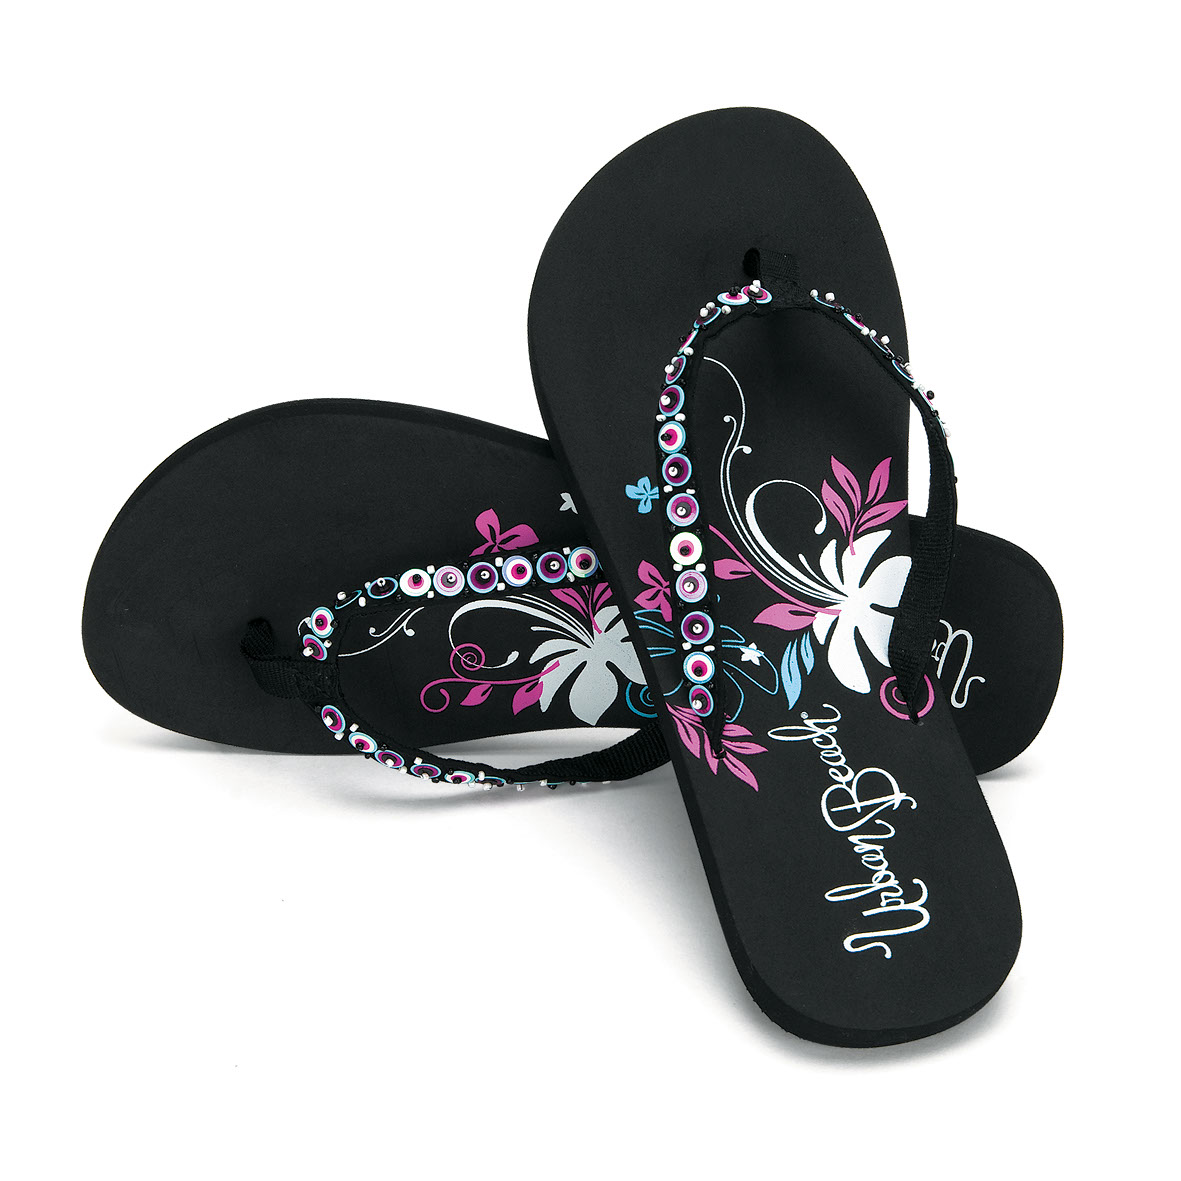 Find wholesale glitter flip flops online from China glitter flip flops wholesalers and dropshippers. DHgate helps you get high quality discount glitter flip flops at bulk prices. humorrmundiall.ga provides glitter flip flops items from China top selected Sandals, Shoes & Accessories suppliers at wholesale prices with worldwide delivery.